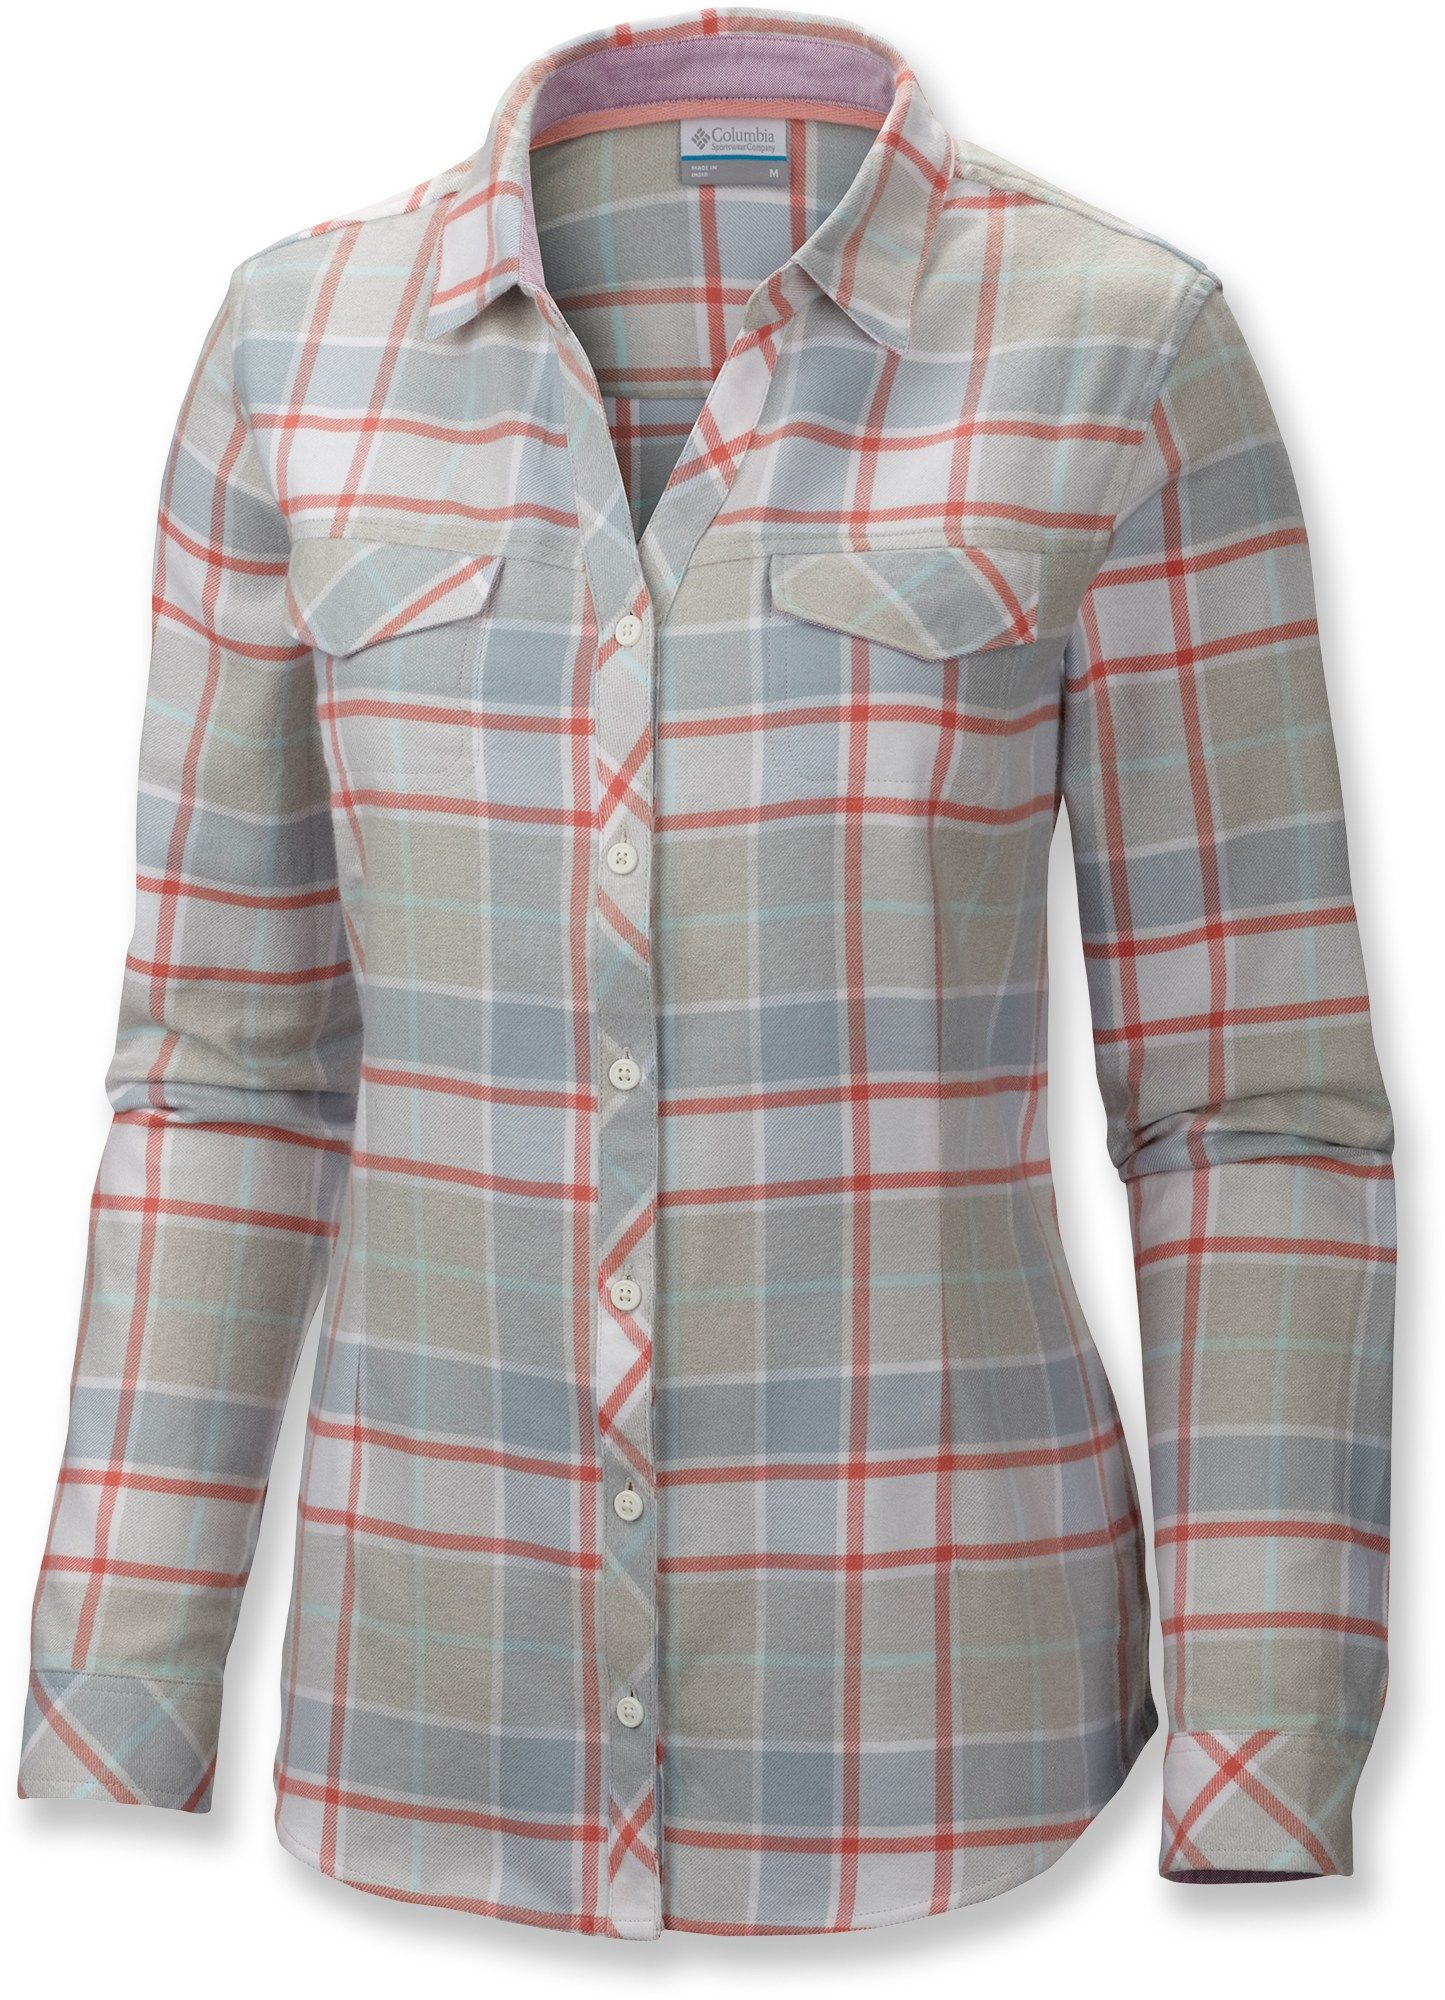 Columbia flannel jacket  Columbia Simply Put II Flannel Shirt  Womenus Plus Sizes  My Style